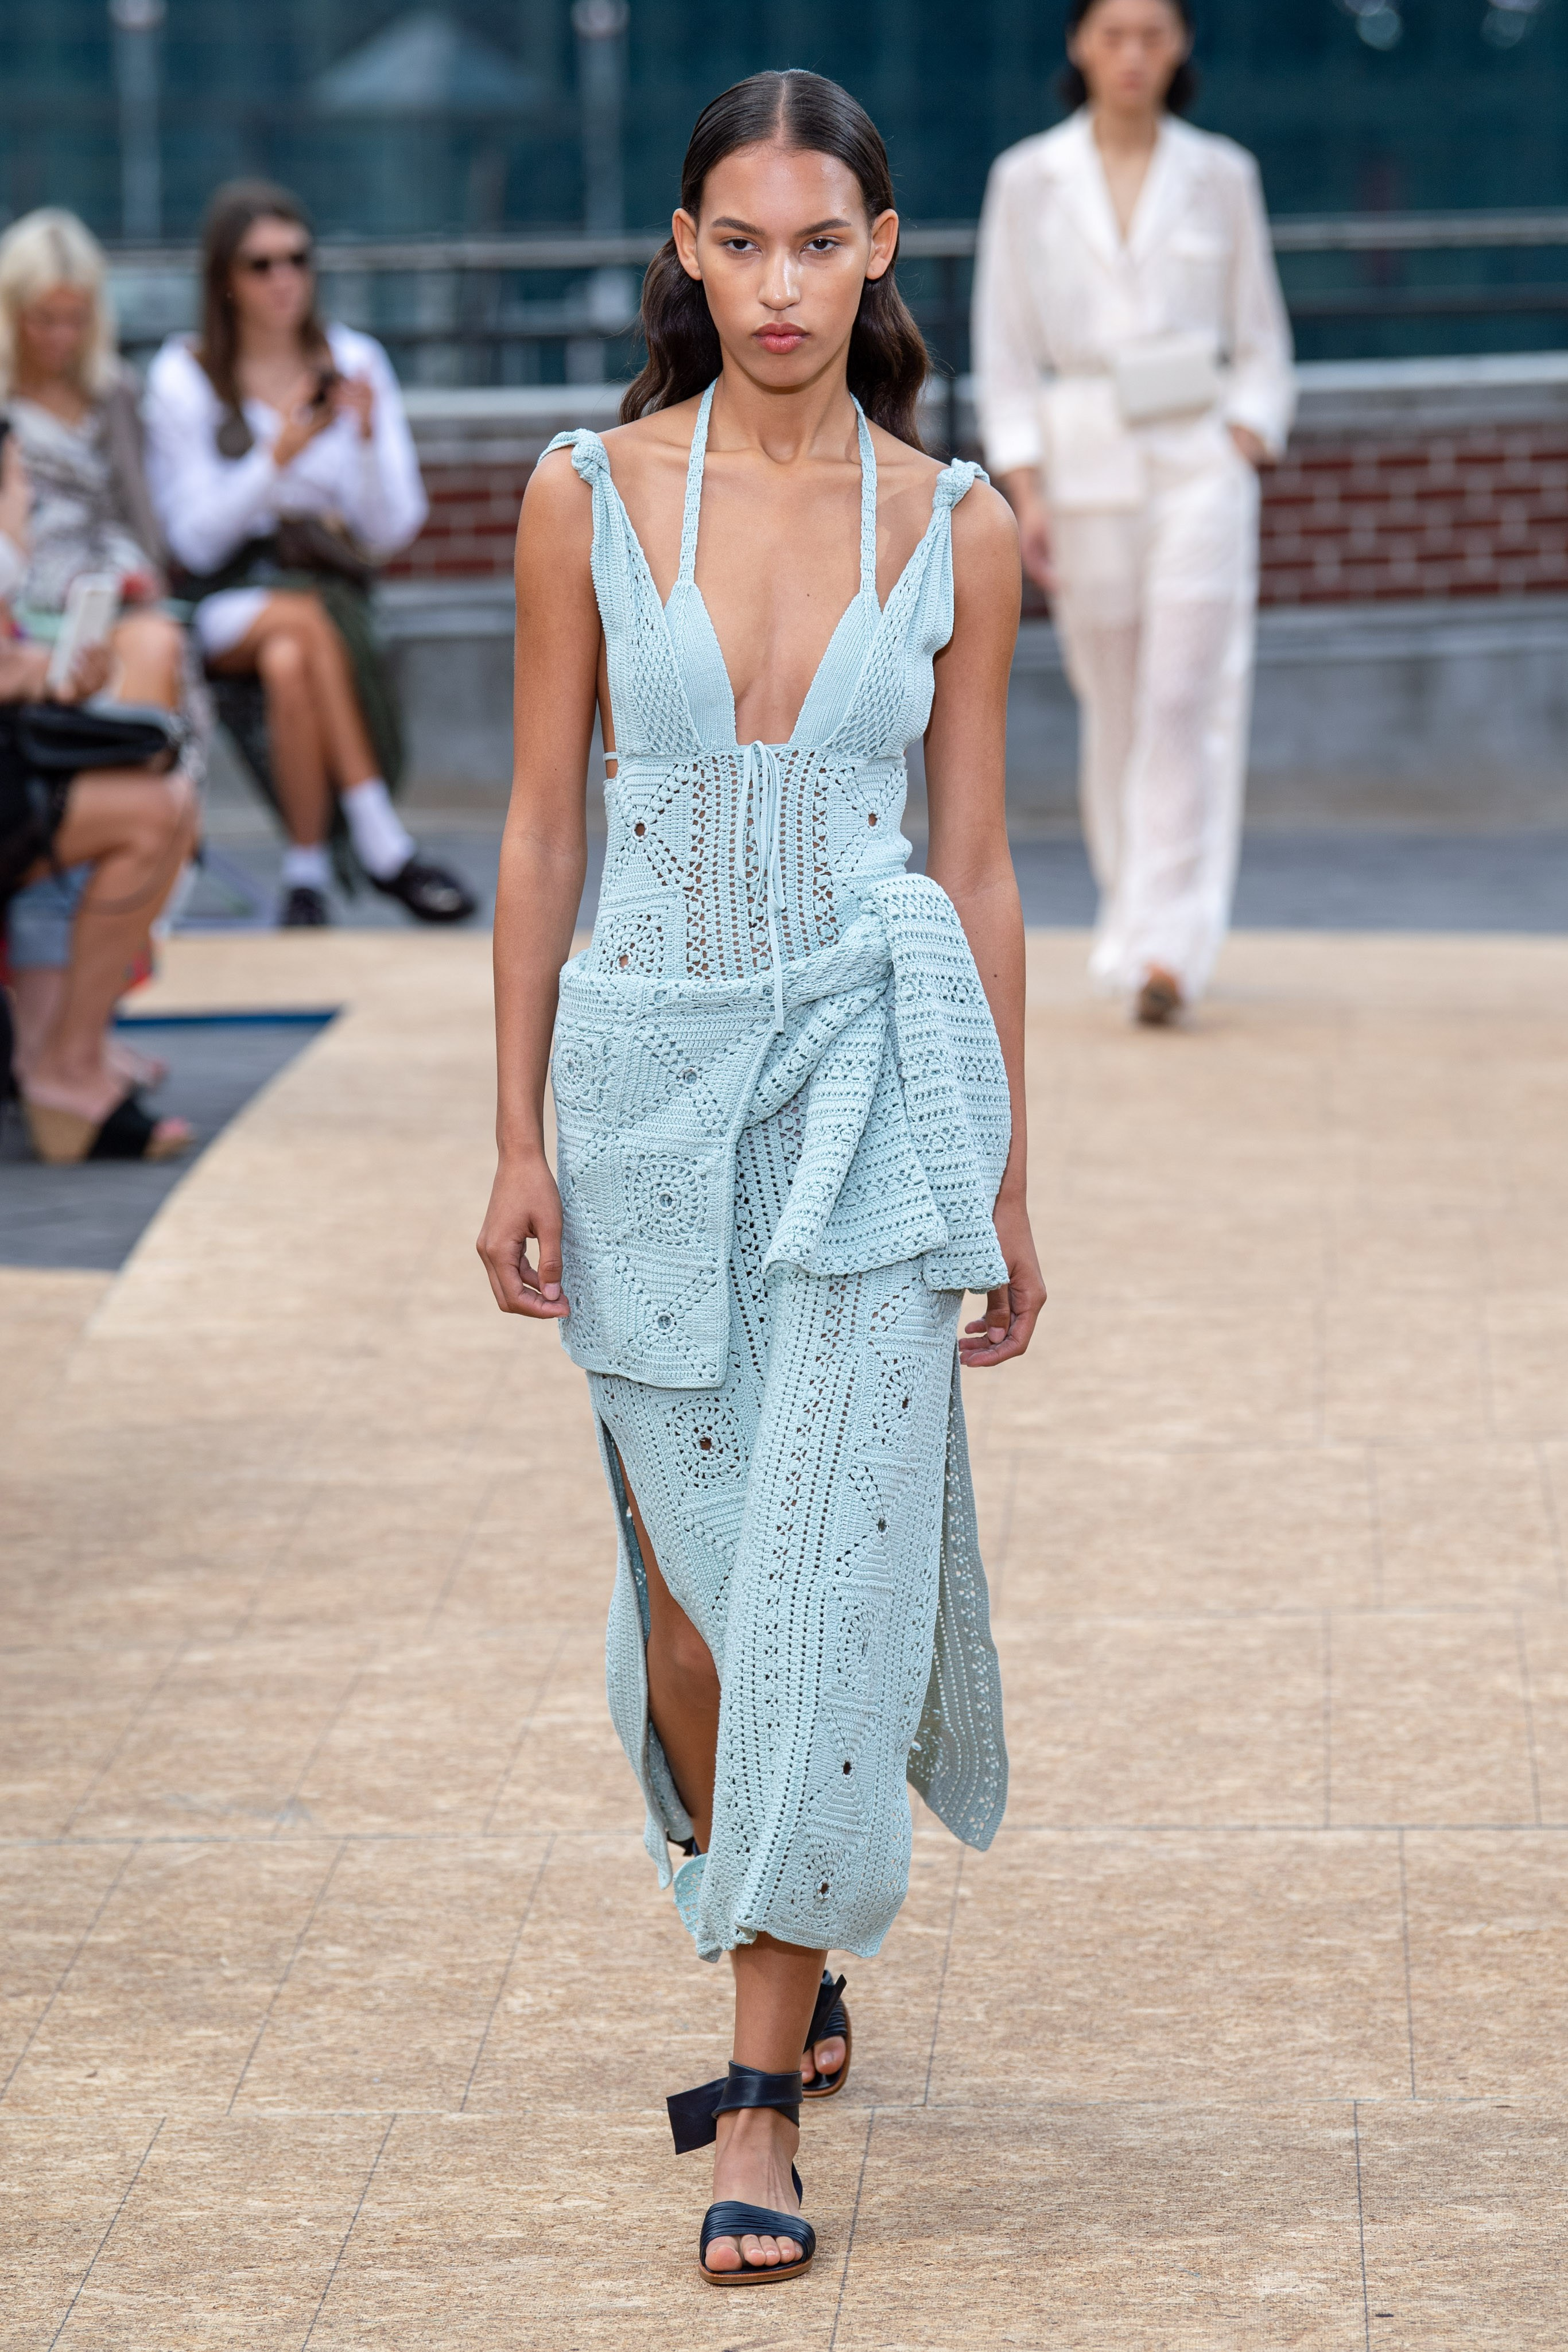 Jonathan-Simkhai-7-fashion-trends-that-will-be-huge-in-2020